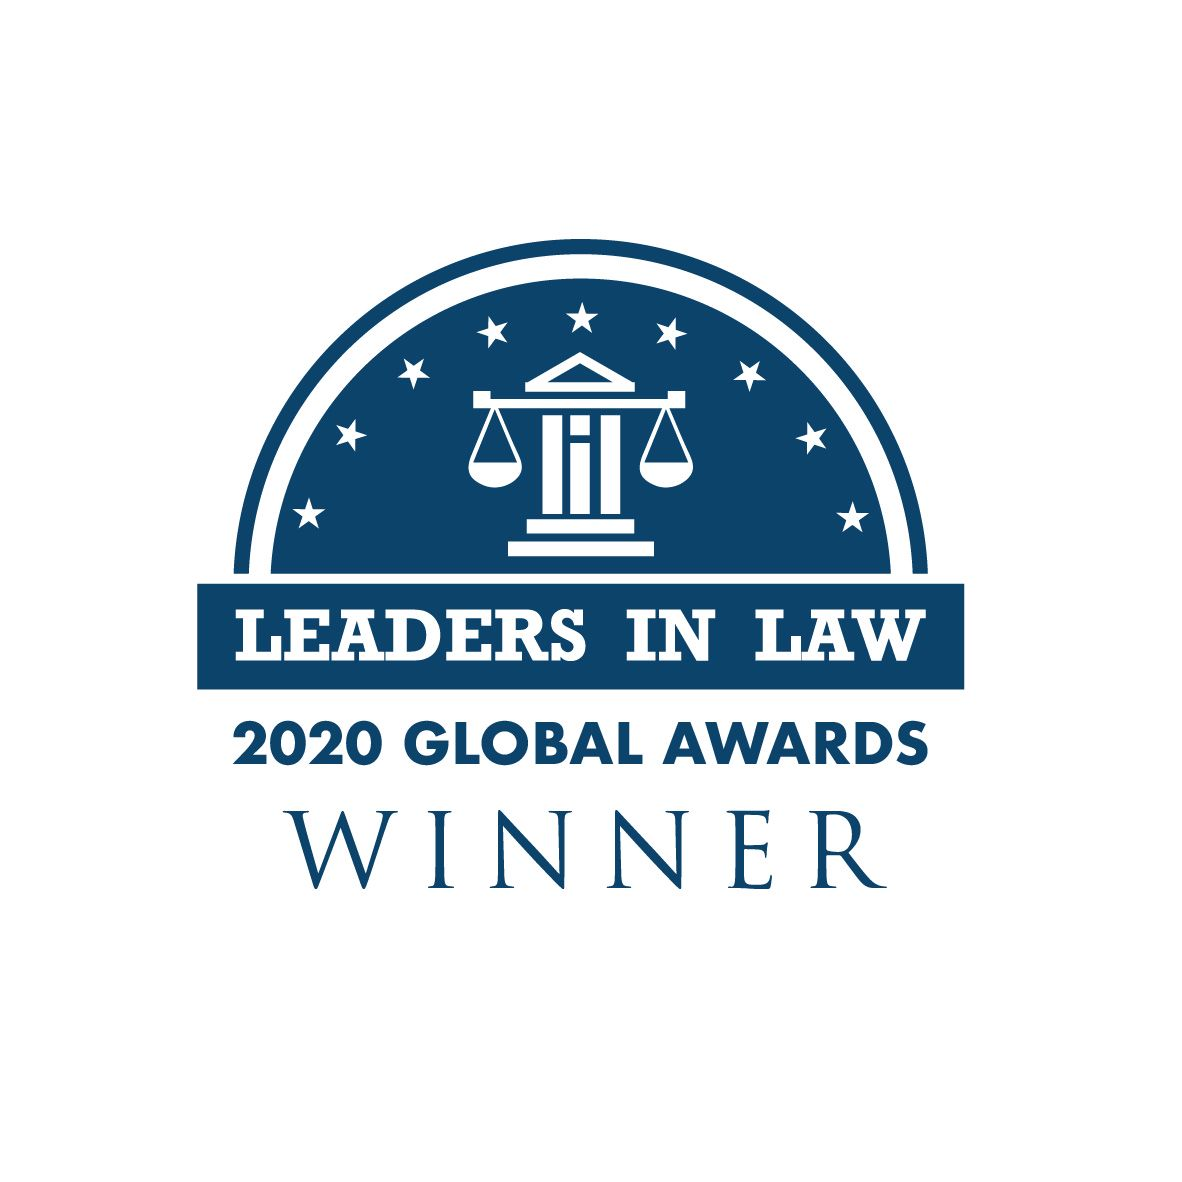 Leaders in Law - Global Awards Winner 2020